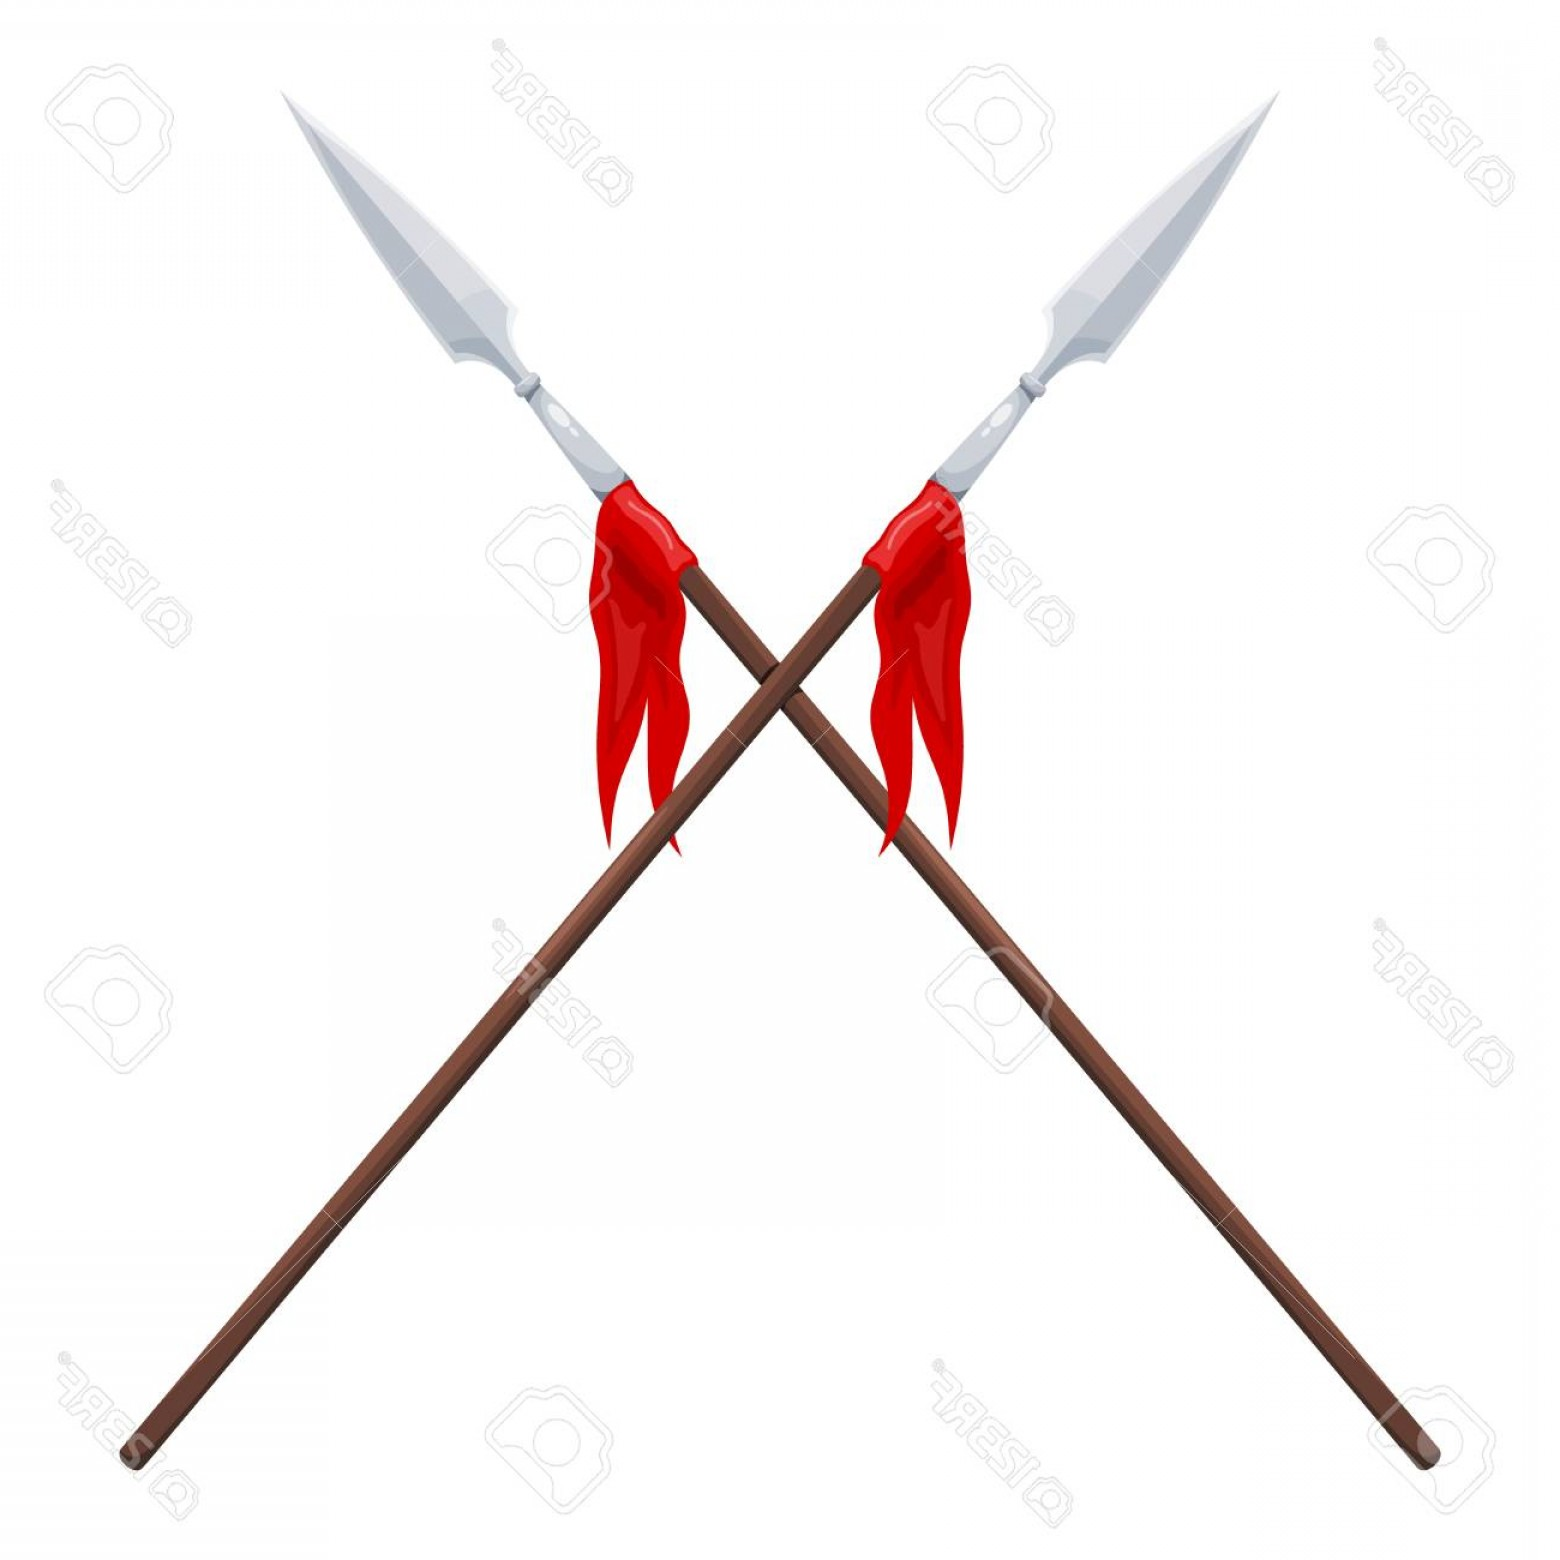 Pike Spear Vector: Photostock Vector Two Spears On A White Background Vector Illustration Of Crossed Traditional Spears With A Red Flag